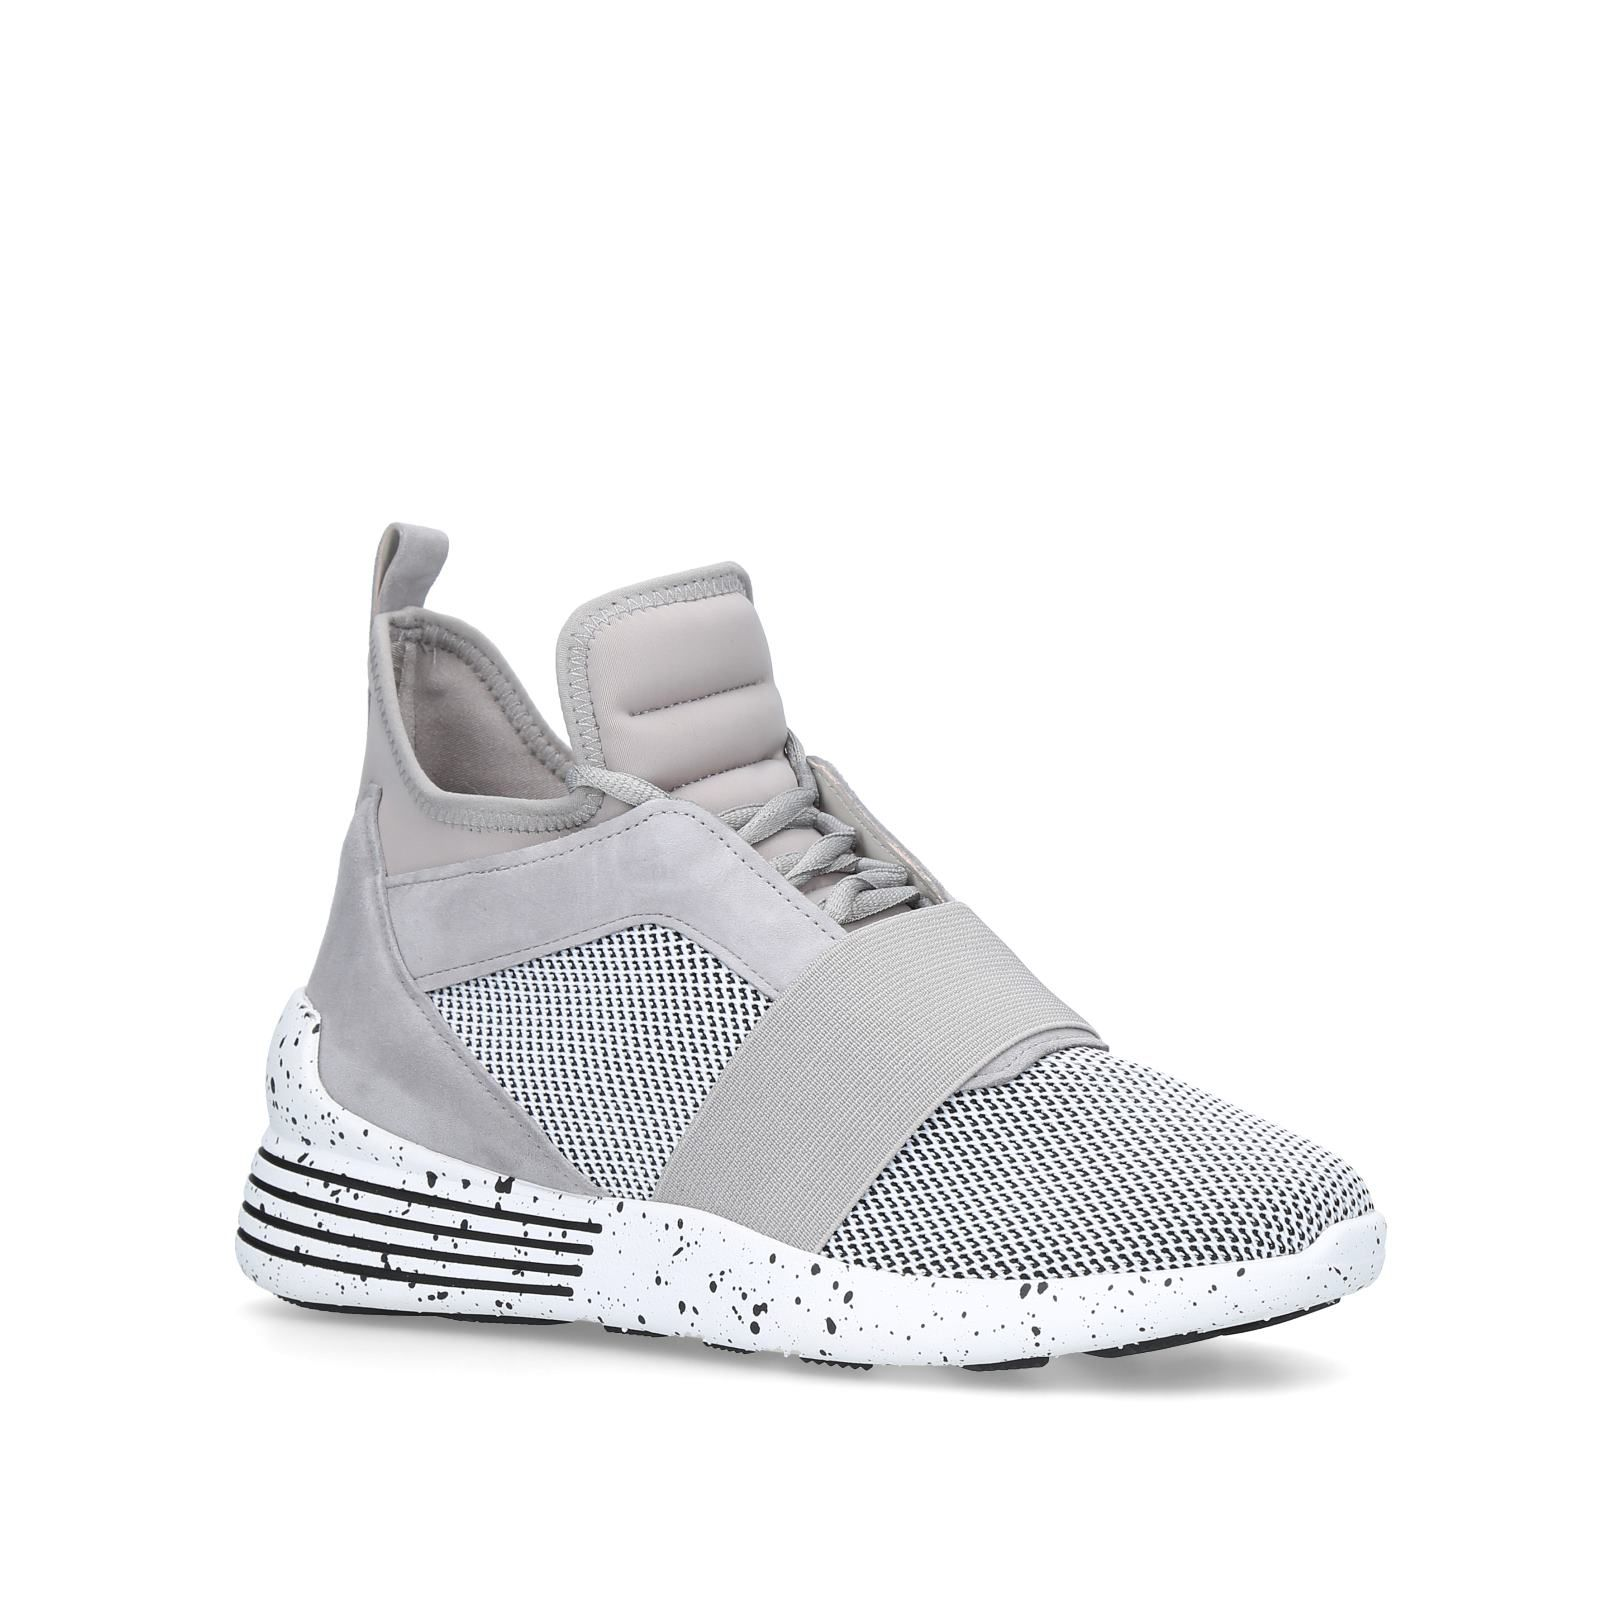 Kendall & Kylie Braydin 7 Trainers, White